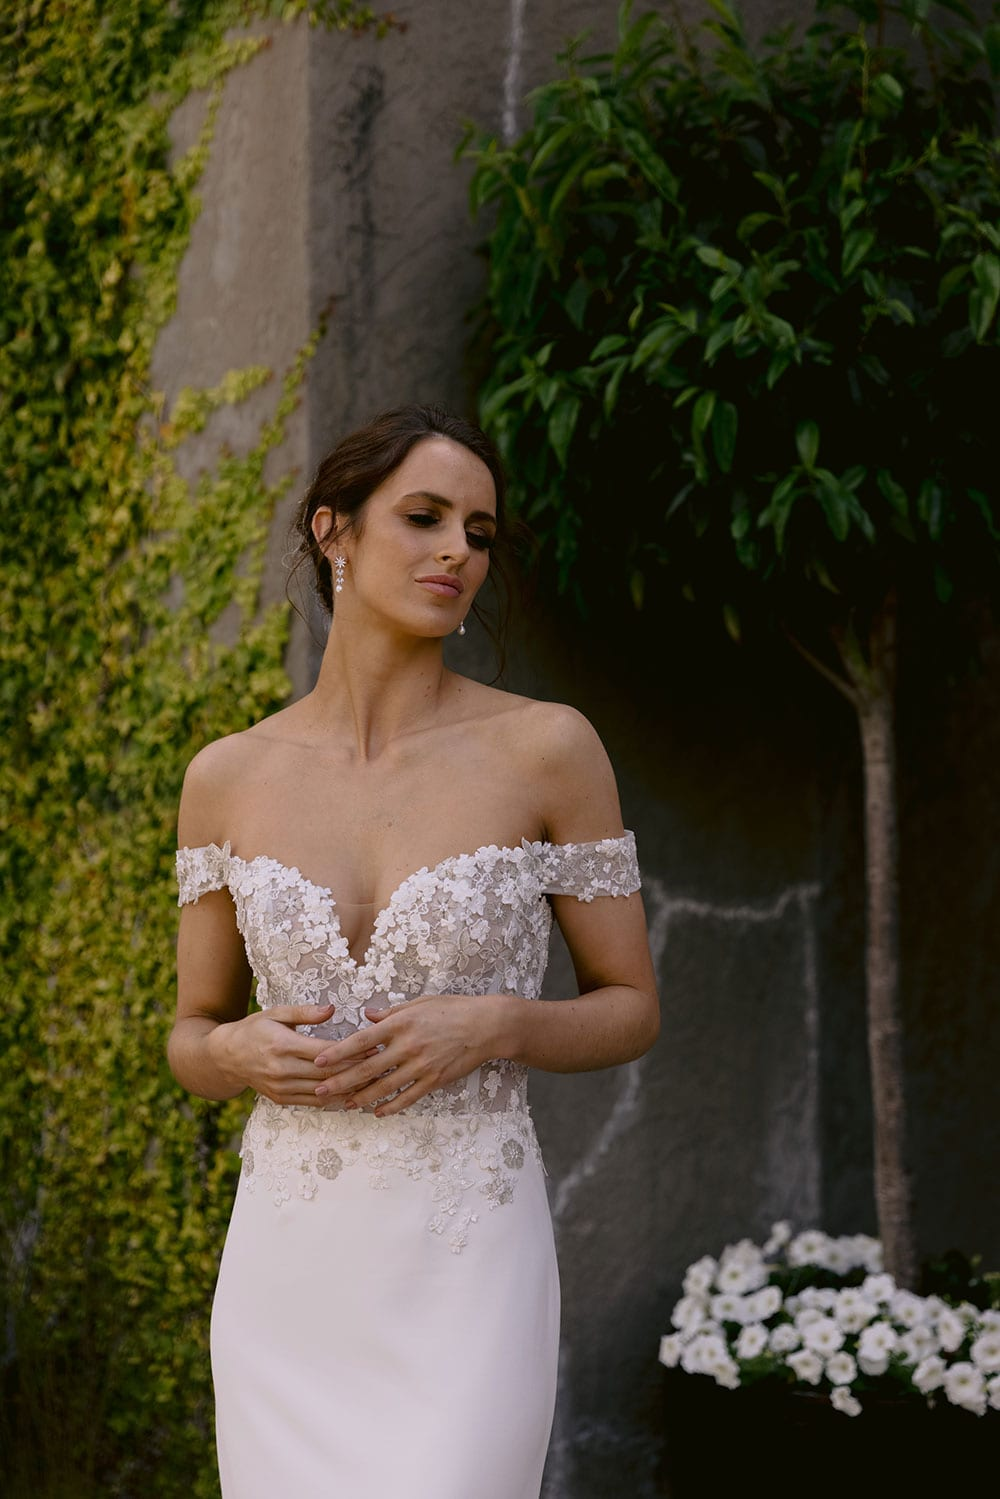 Chloe Wedding gown from Vinka Design - Wedding gown with 3D embellished platinum and ivory flower lace, complemented by stunning off-shoulder straps. A semi-sheer bodice trails into a gorgeous stretch crepe skirt that hugs the figure in all the right places. Model wearing gown in gardens detail of V front of dress.